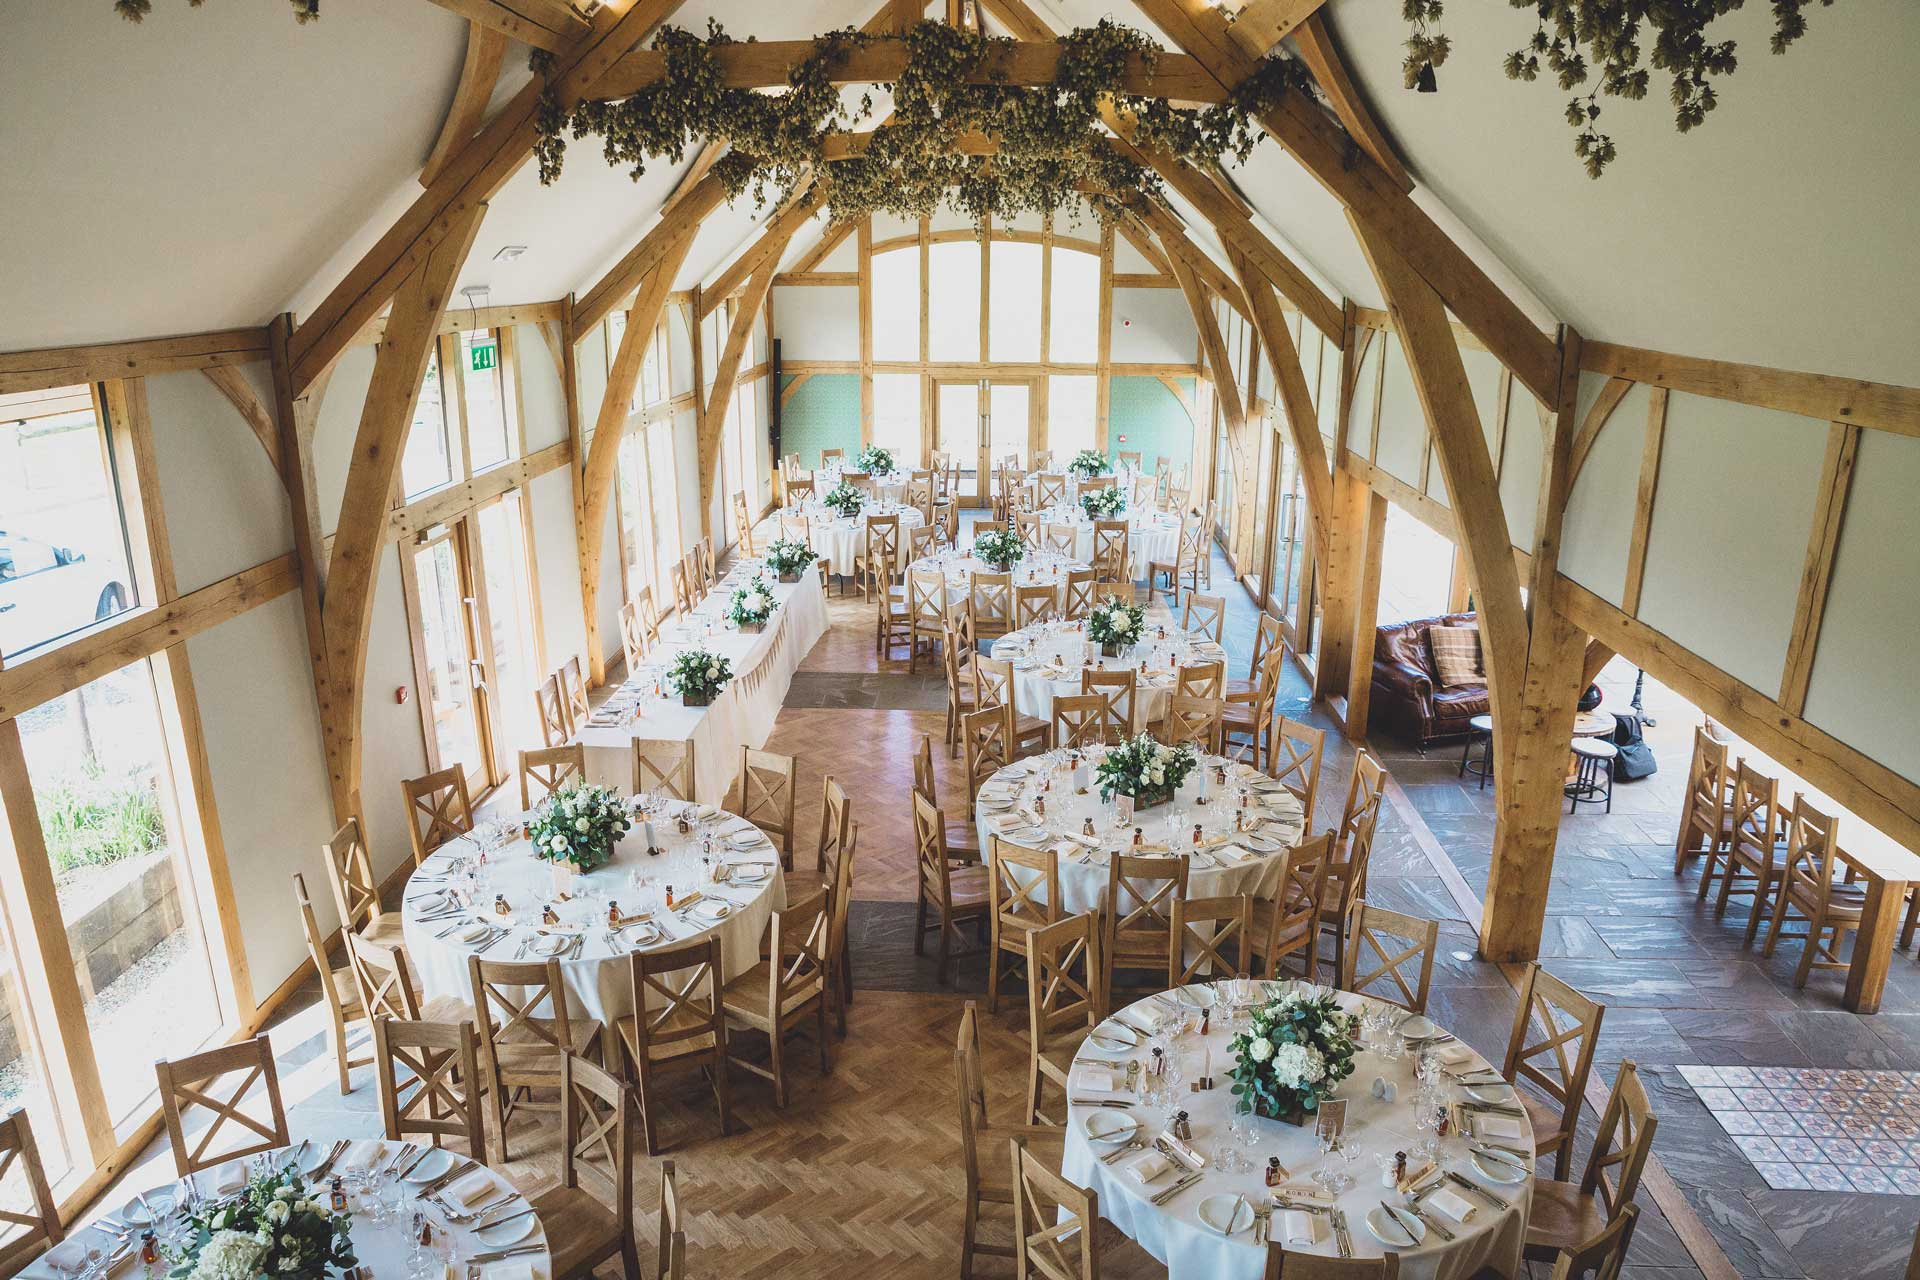 Pre-set tables ready in a wooden styled room